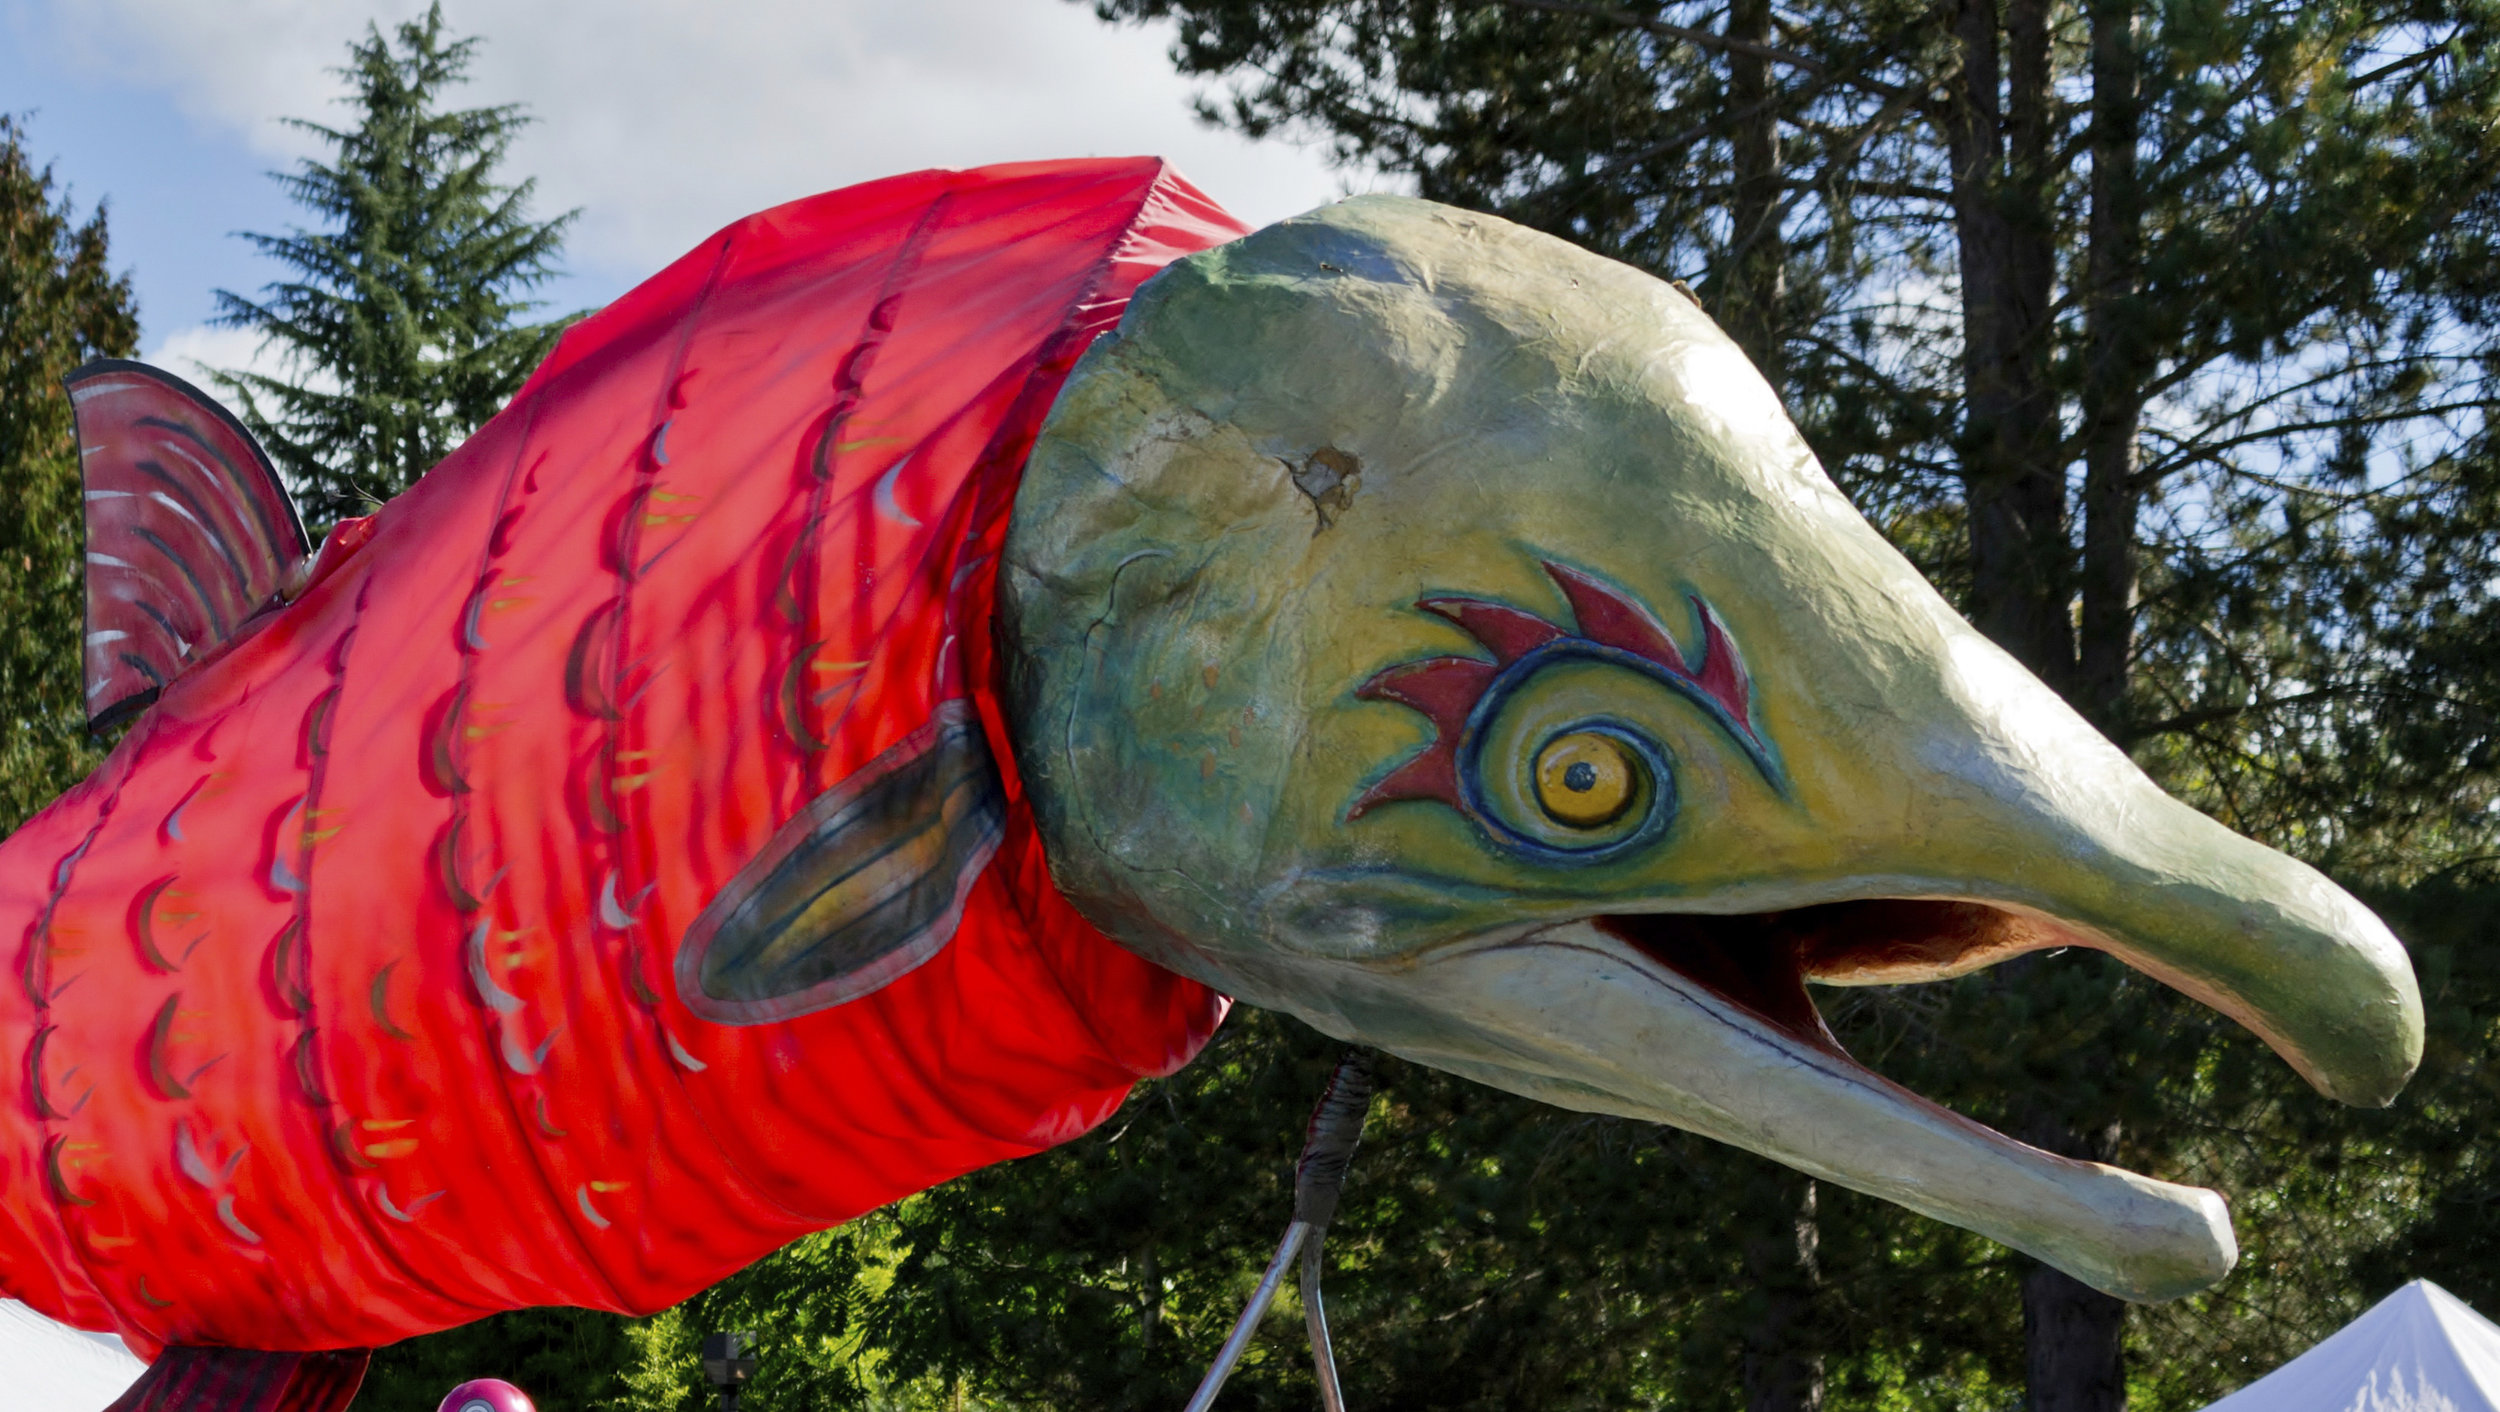 A salmon sculpture at Issaquah Salmon Days. Photo by Milo Zorzino.  Volunteer.